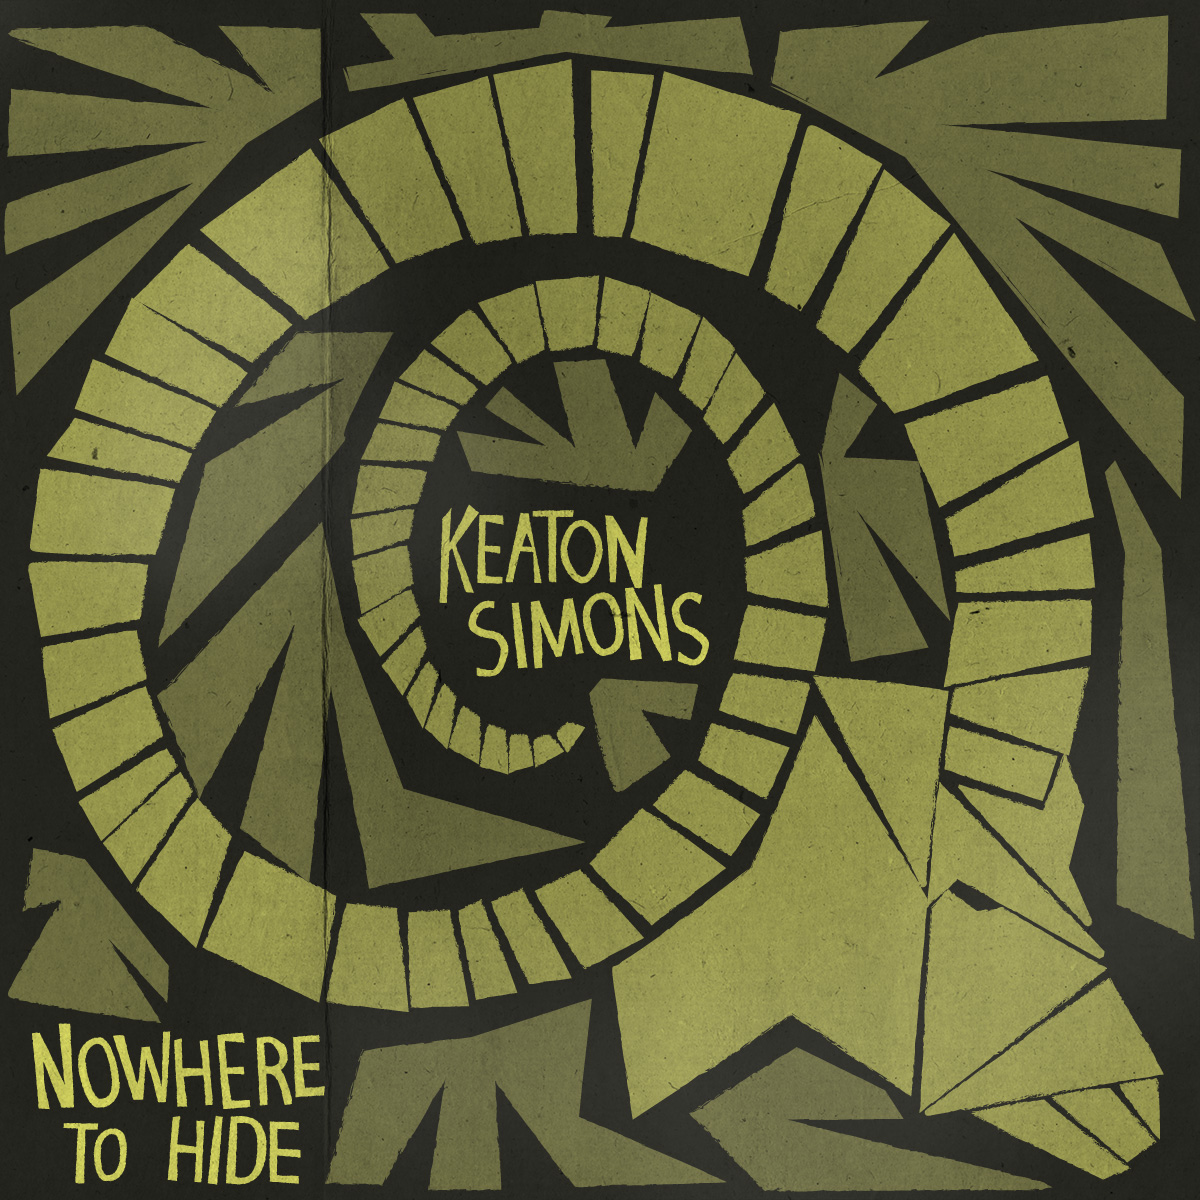 Keaton Simons Nowhere To Hide ART